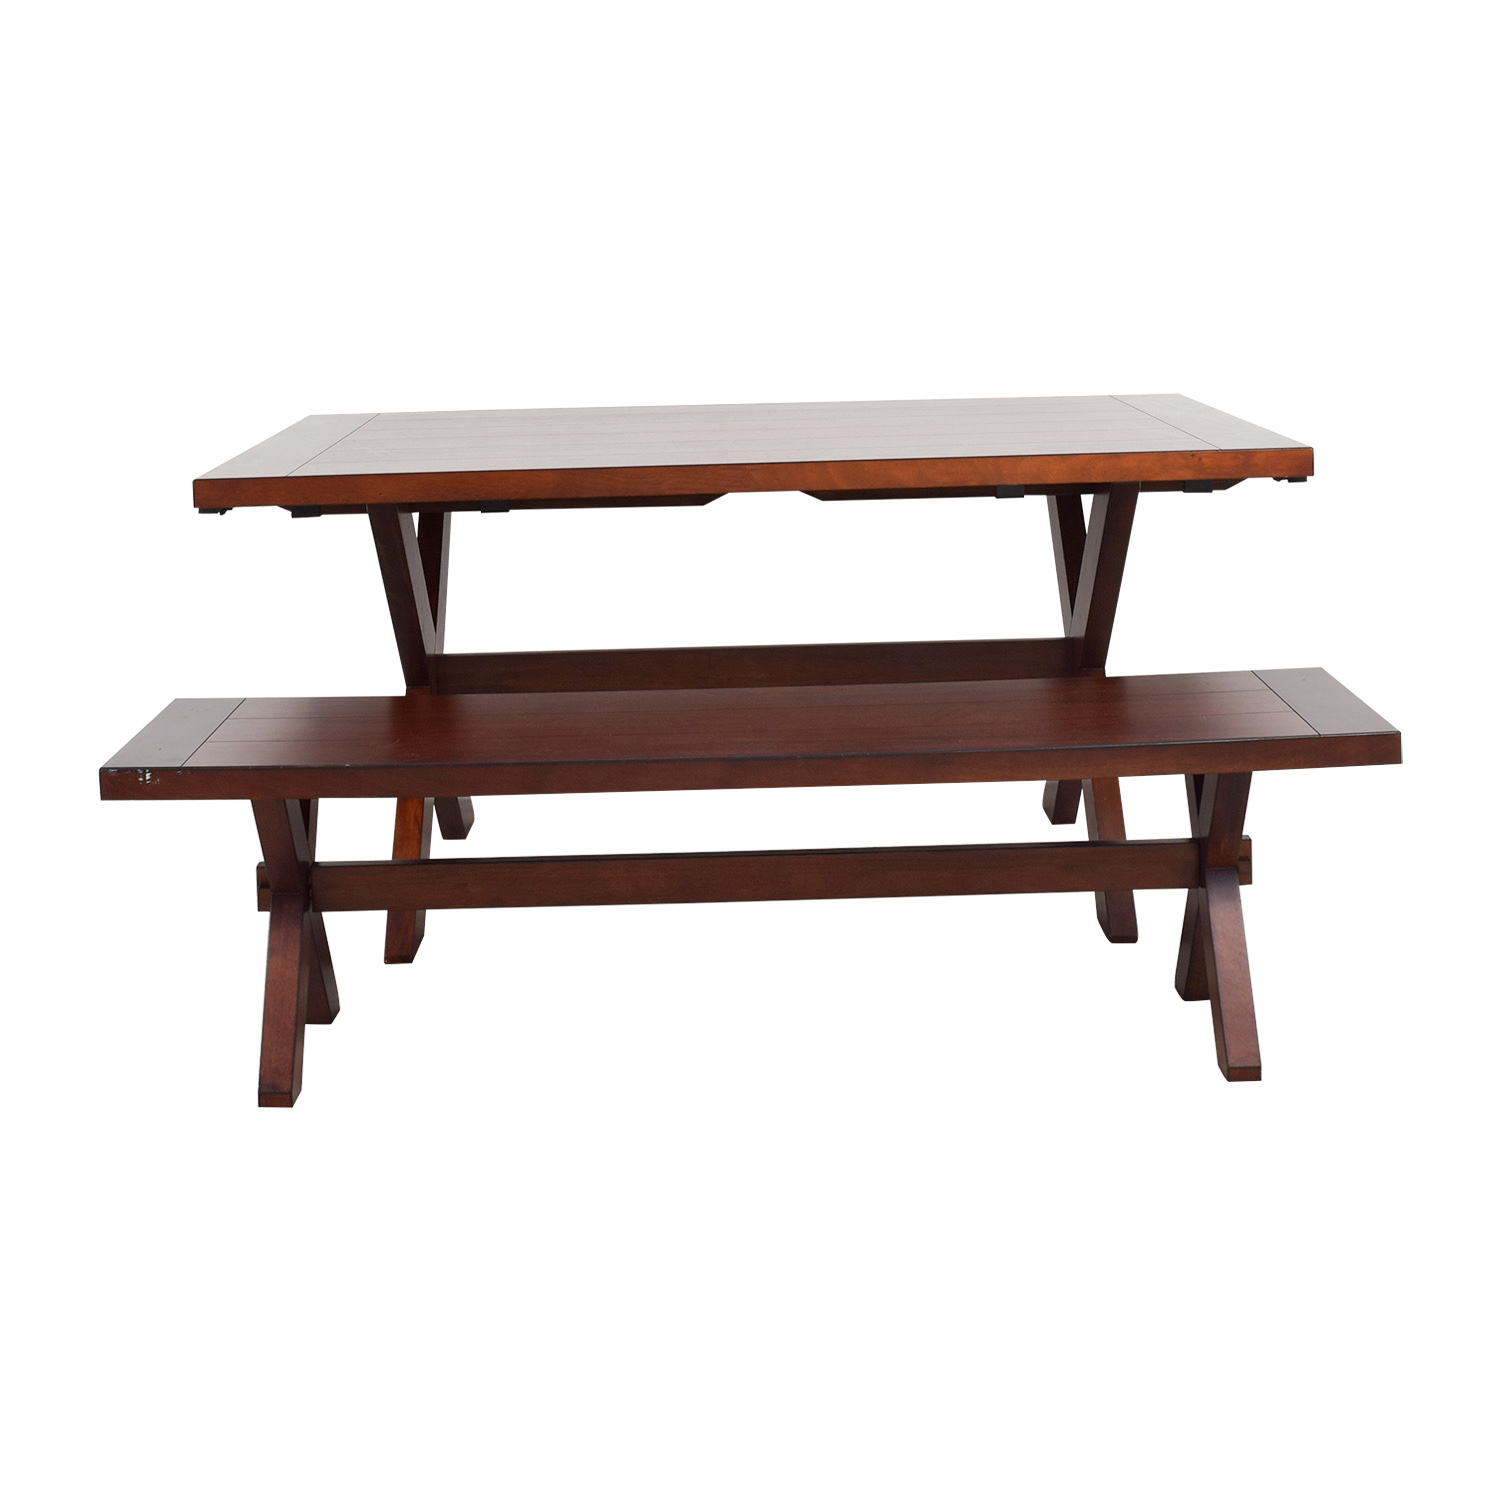 90 off pier 1 pier 1 imports nolan wood dining table with bench tables